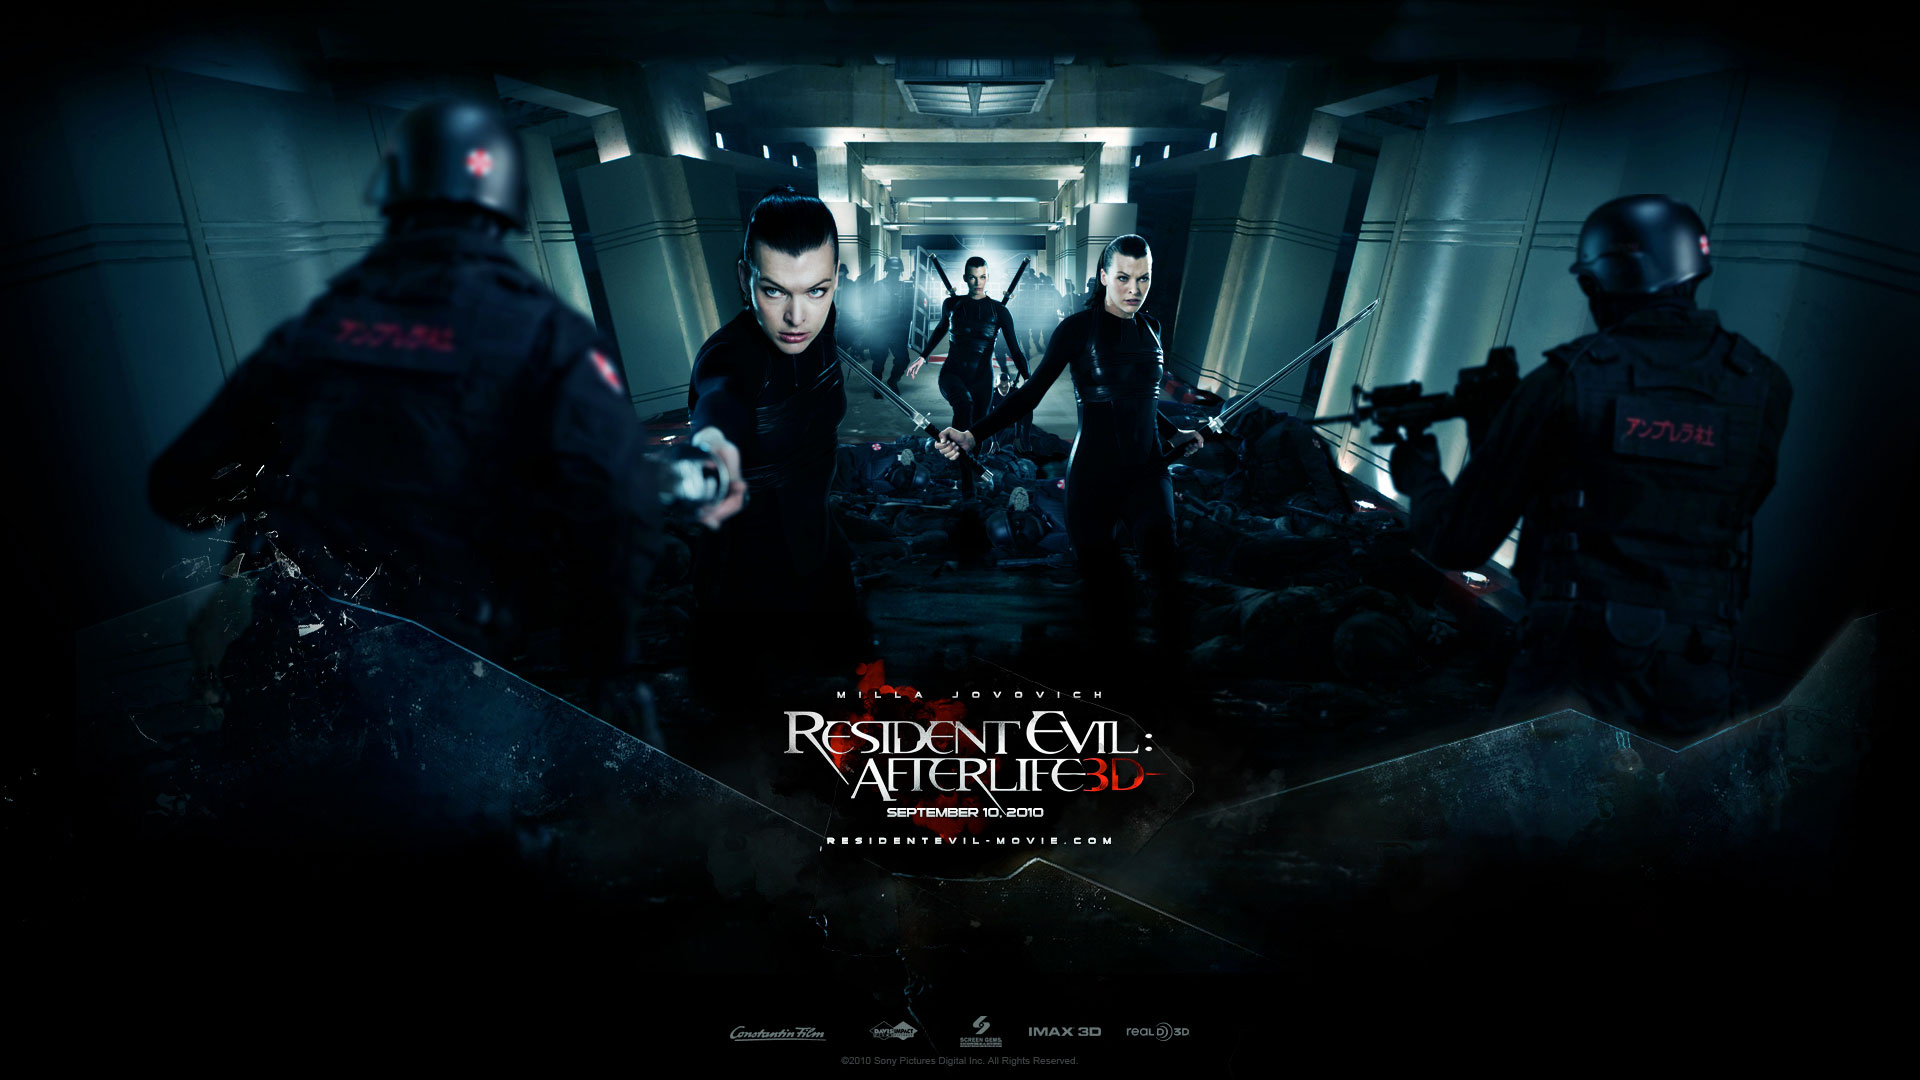 Pictures Resident Evil Movies Resident Evil 4 Afterlife 1920x1080